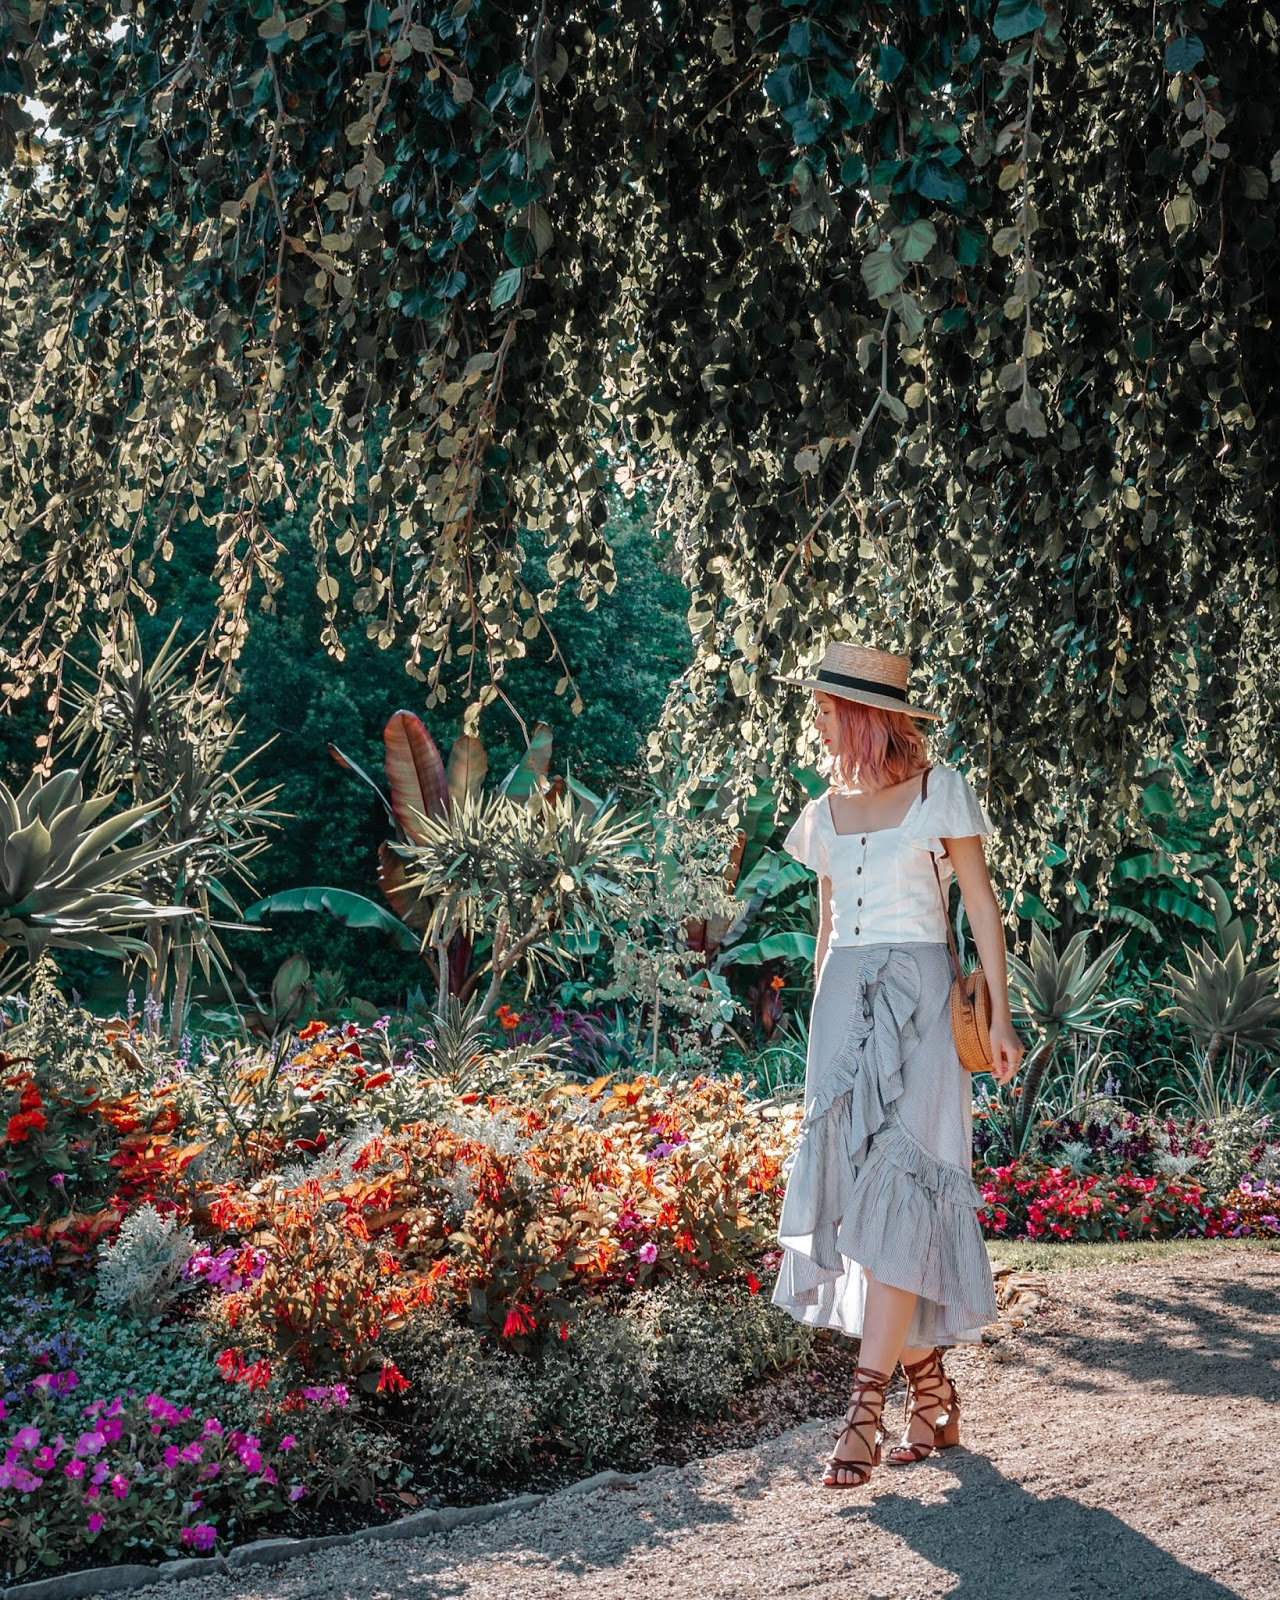 VanDusen Botanical Garden, Vancouver, boater hat, pink hair, rattan purse, wicker purse, style blogger, travel style, travel blogger, things to do in vancouver, summer lookbook, fall lookbook, fall trends, canadian blogger, canadian fashion, nordstrom, zara fall 2018, roju store, urban outfitters,